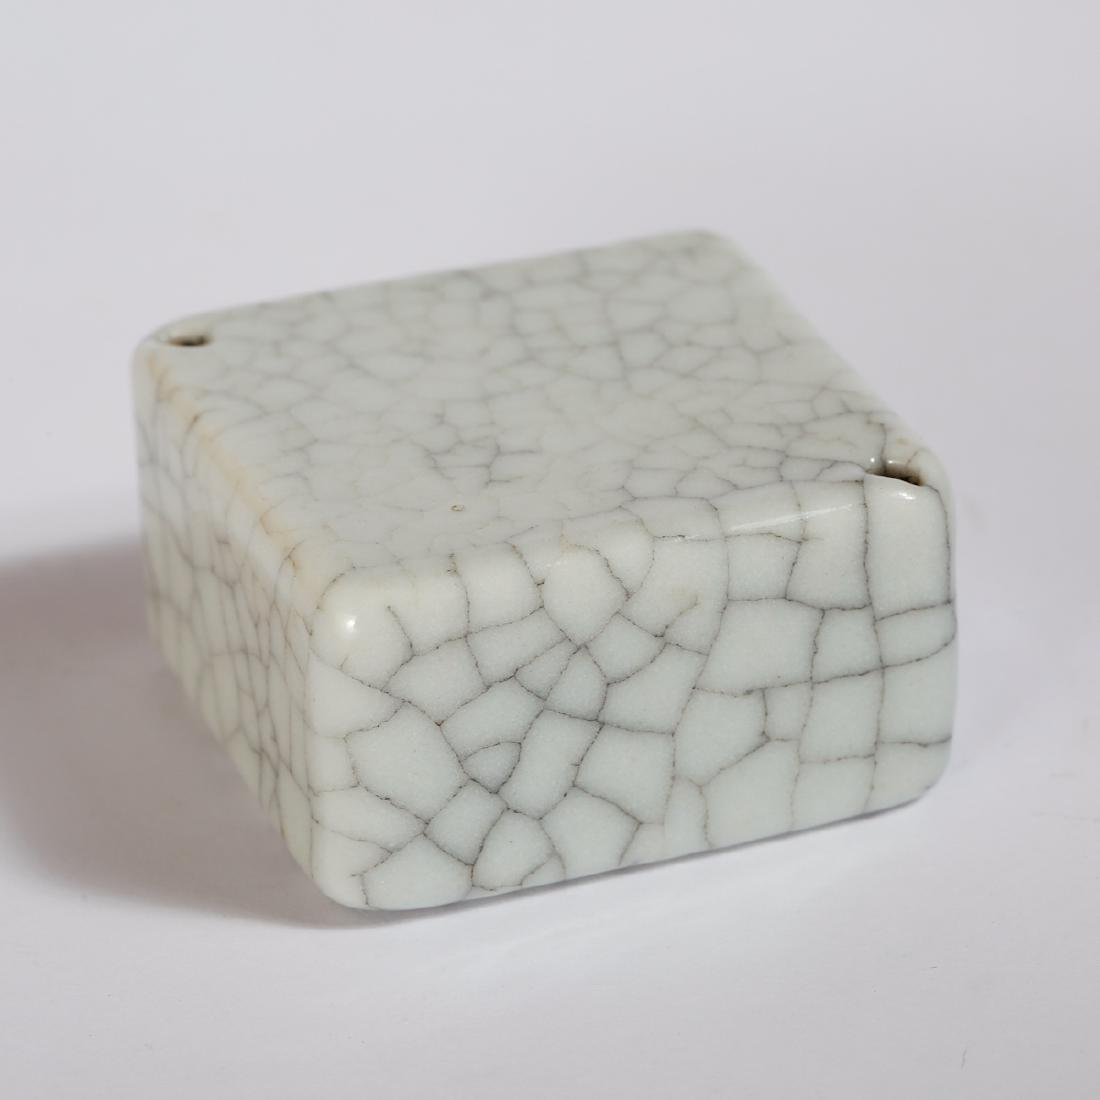 CHINESE CRACKLE GLAZED PORCELAIN WEIGHT